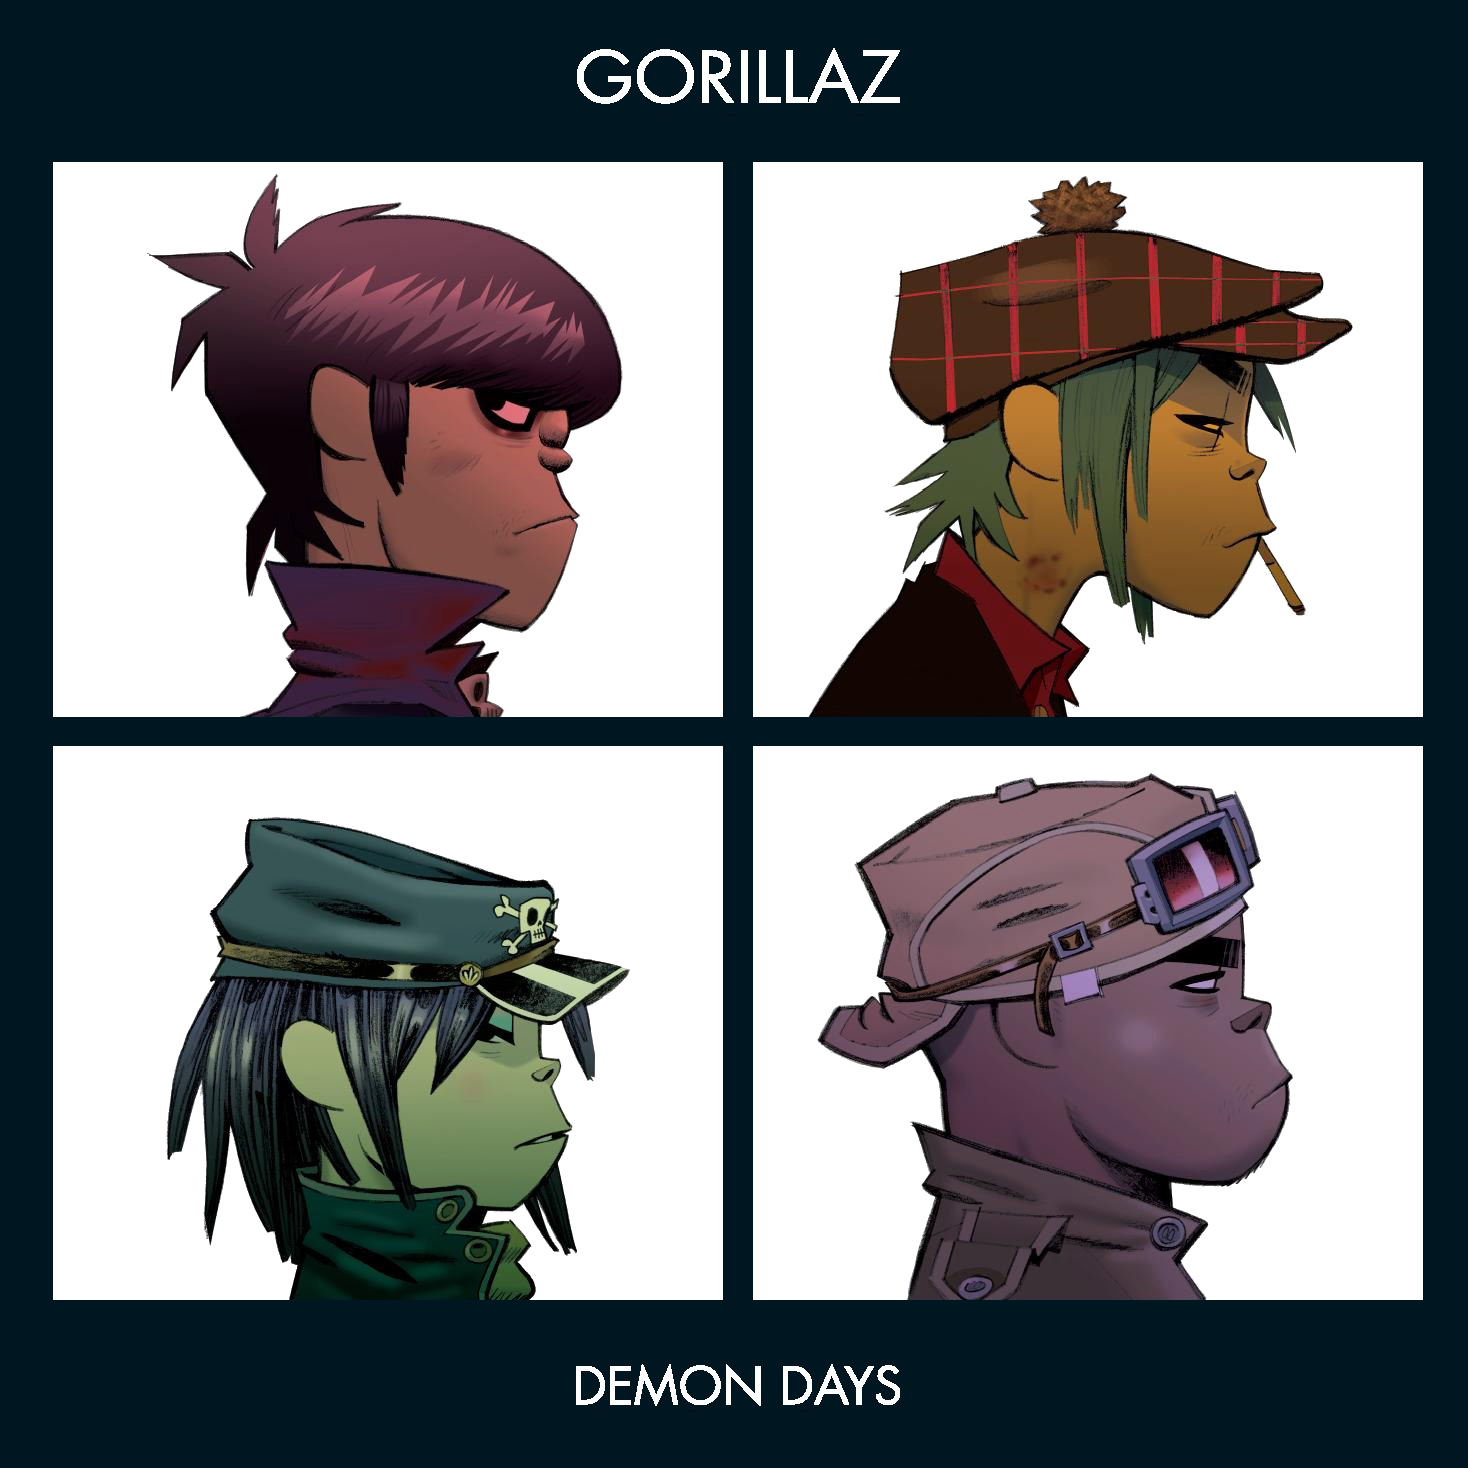 http://vignette1.wikia.nocookie.net/kong/images/e/e5/Gorillaz_-_Demon_Days.png/revision/latest?cb=20150527101924